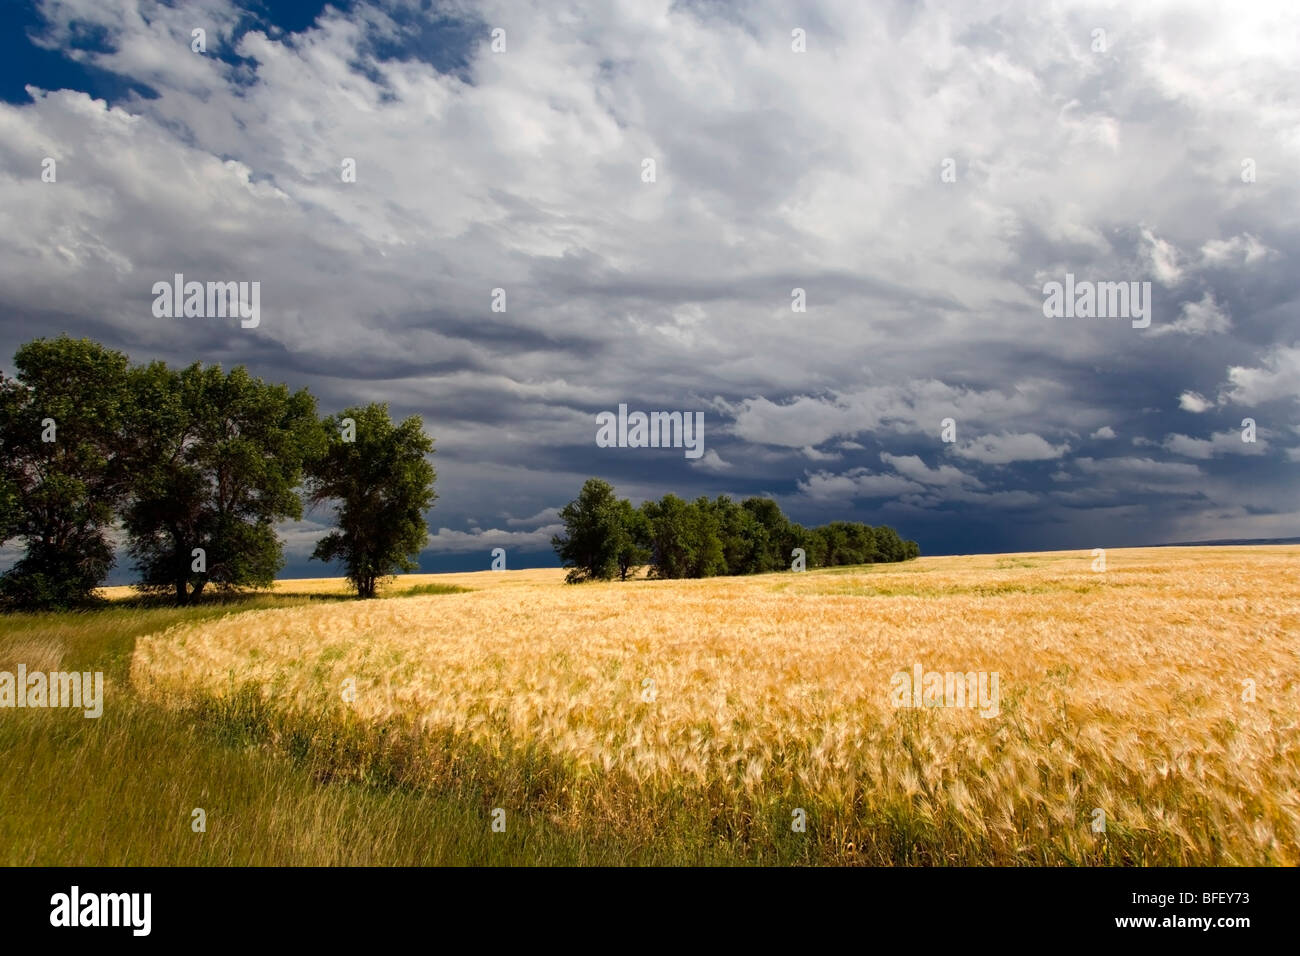 Thunder Storm near Crowfoot Ferry, Alberta, Canada, weather, grain, trees, Agriculture - Stock Image